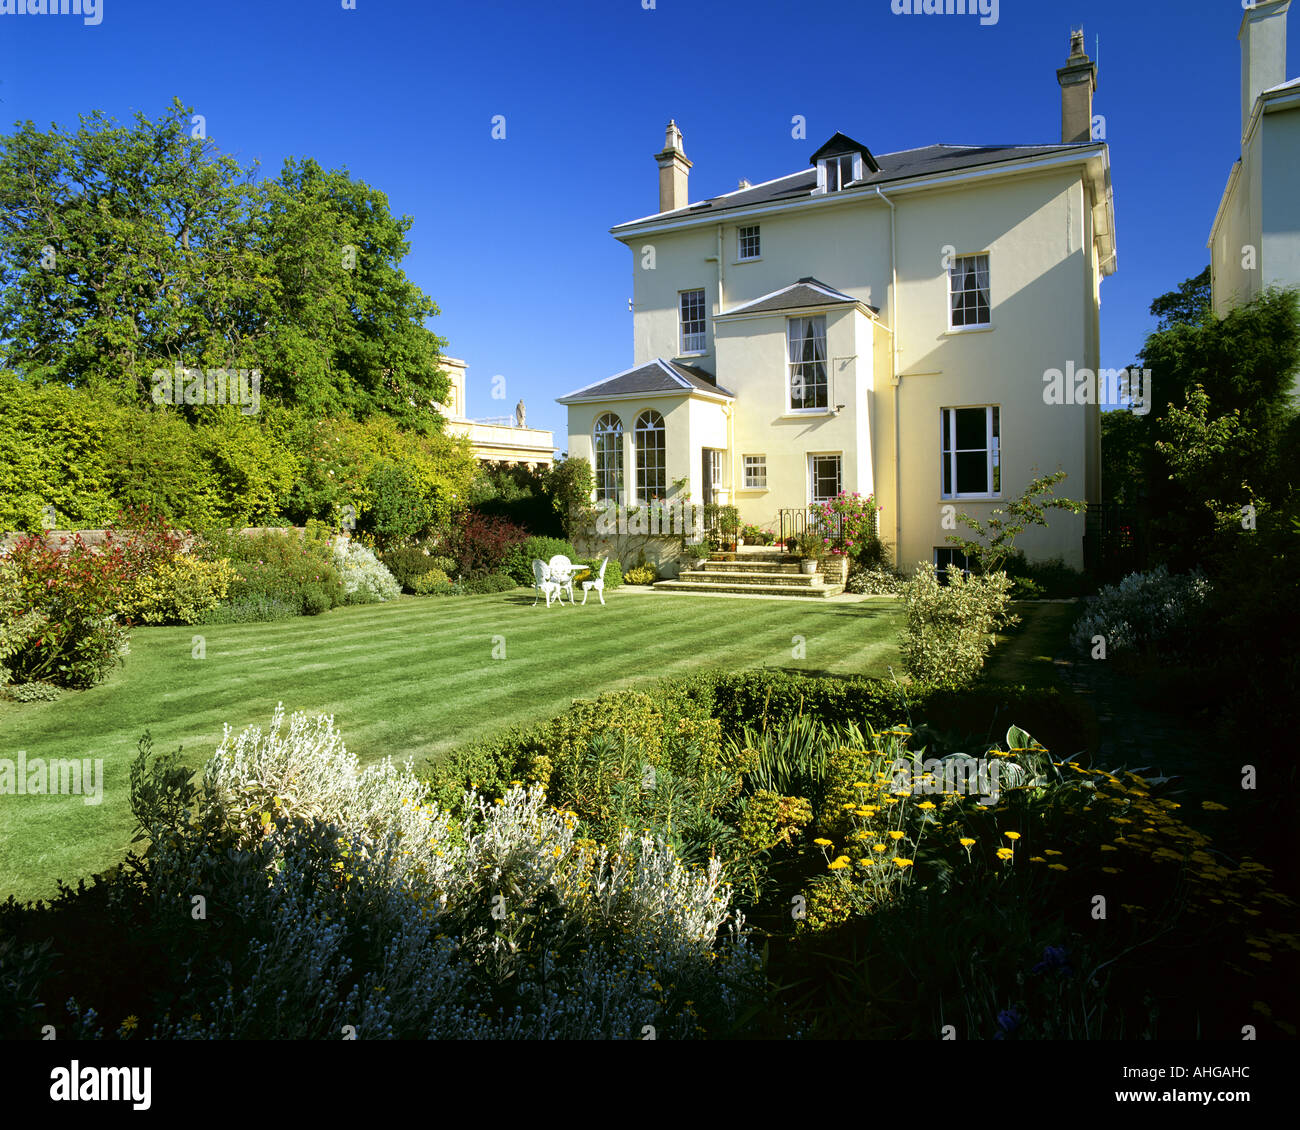 GB - GLOUCESTERSHIRE:  Parkgate Villa in Cheltenham Stock Photo